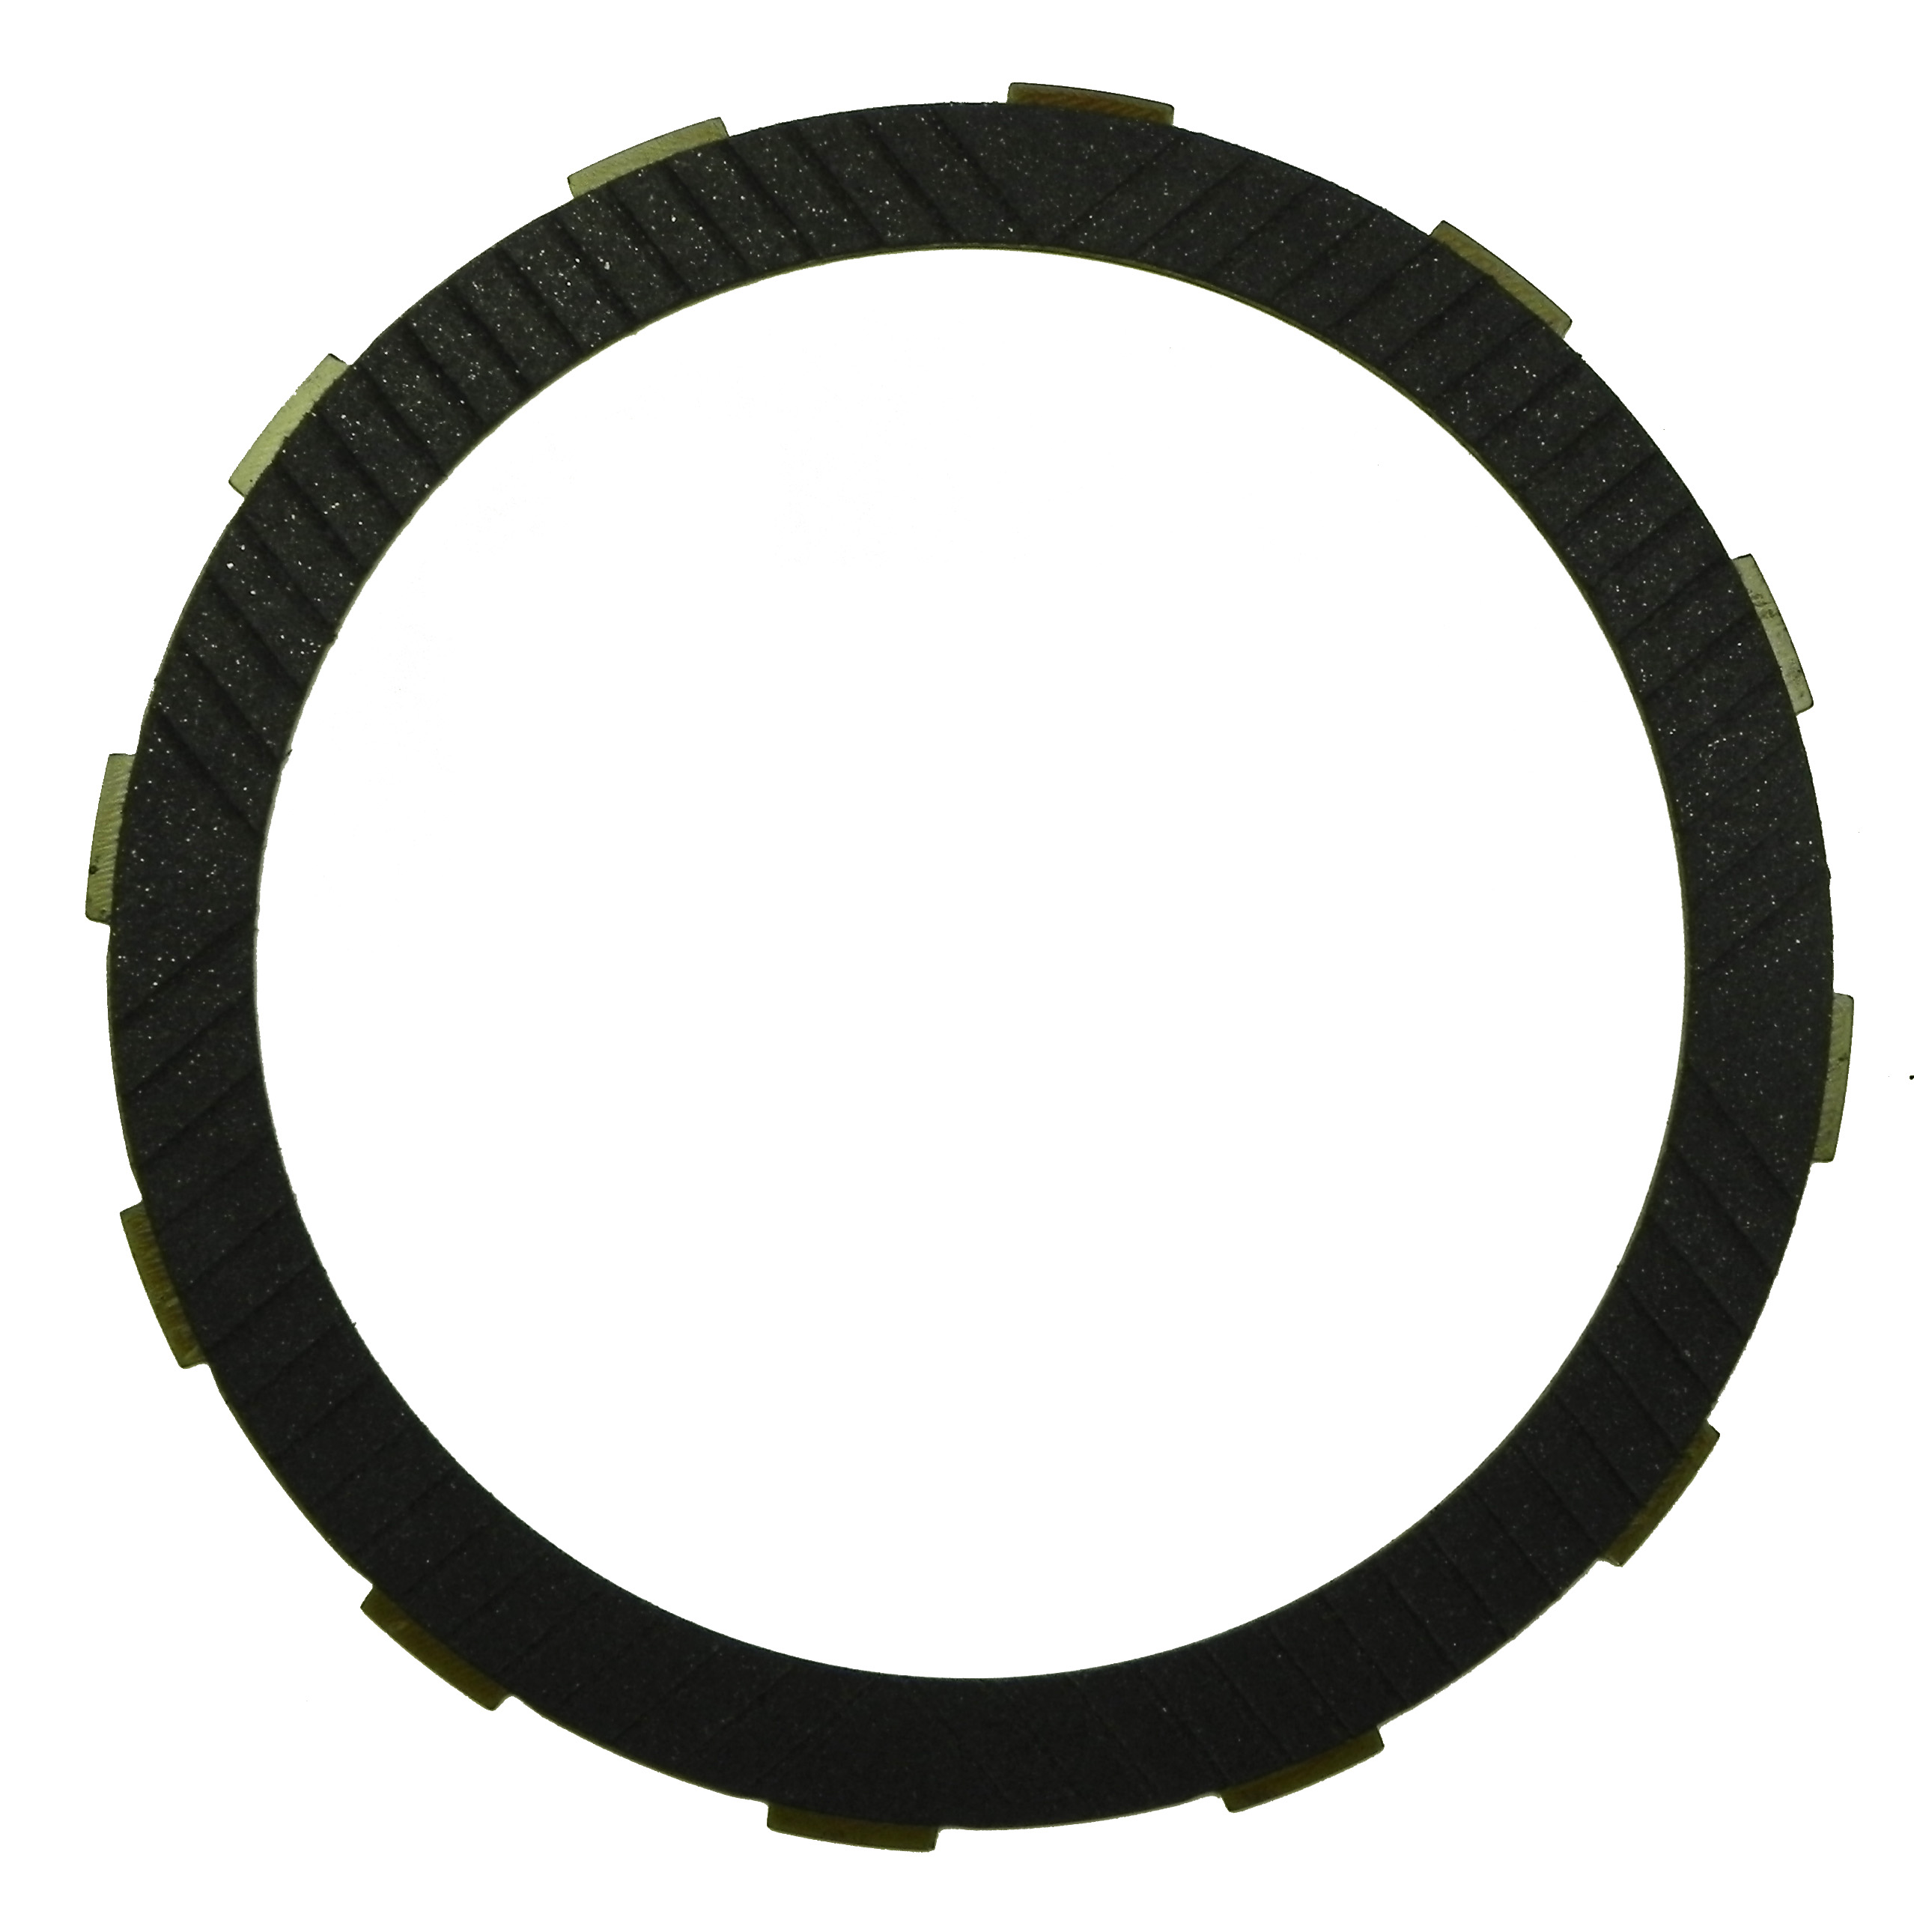 R558150 | 1998-ON Friction Clutch Plate High Energy Reverse Single Sided, OD Spline High Energy AL4